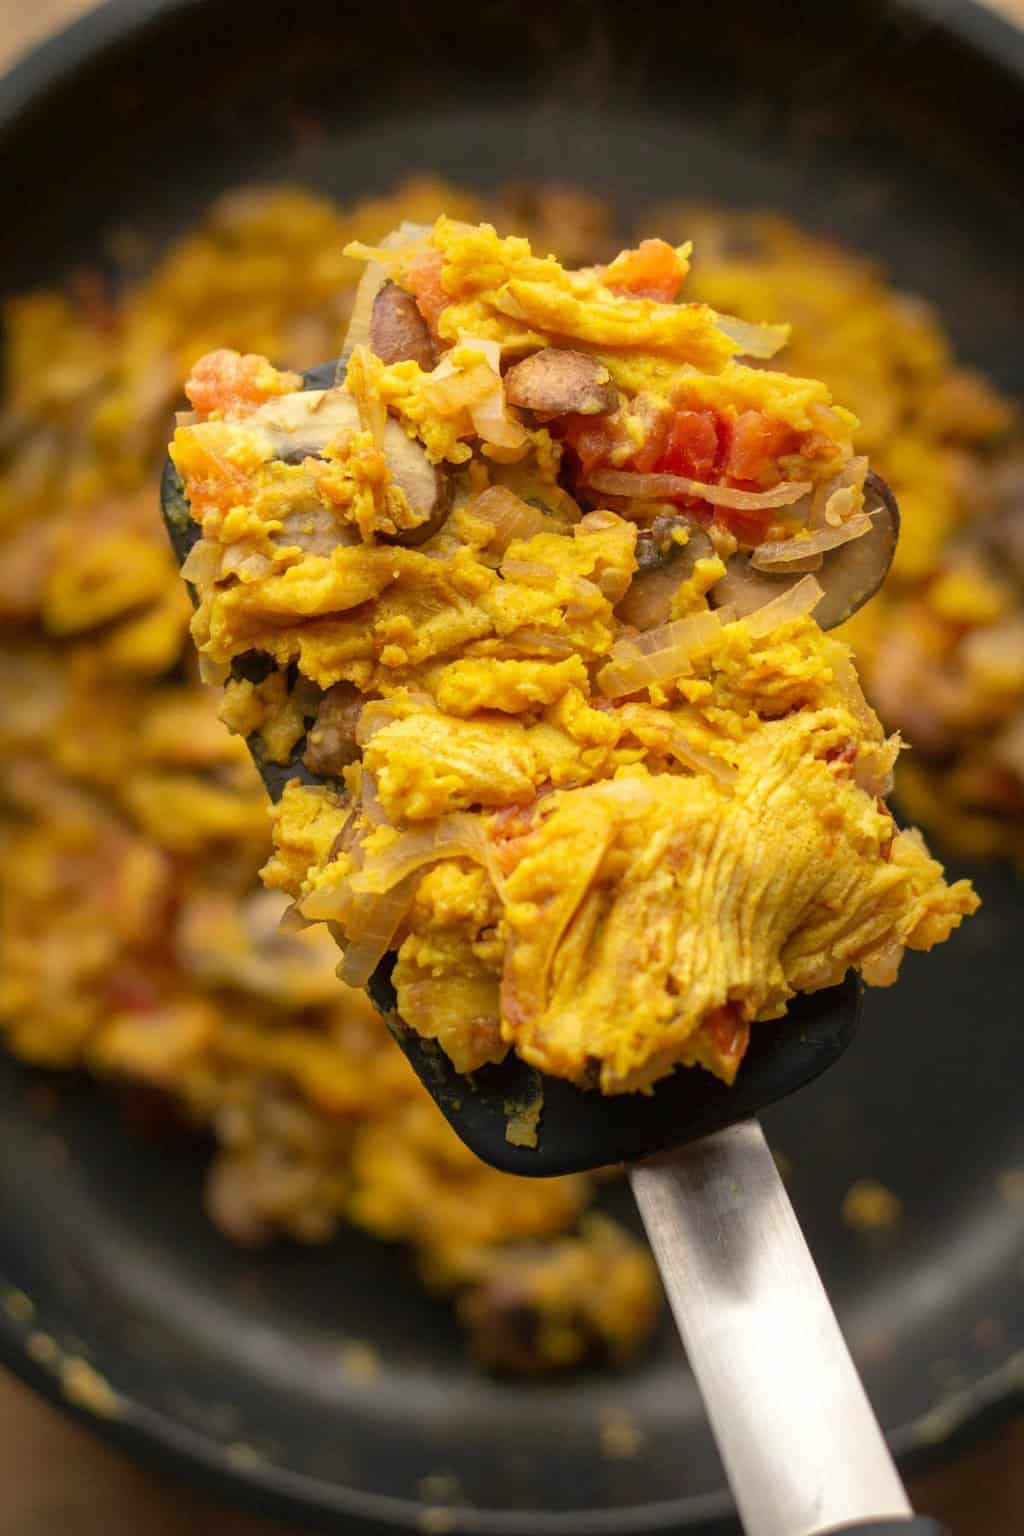 Vegan scrambled eggs in a frying pan with a spatula.